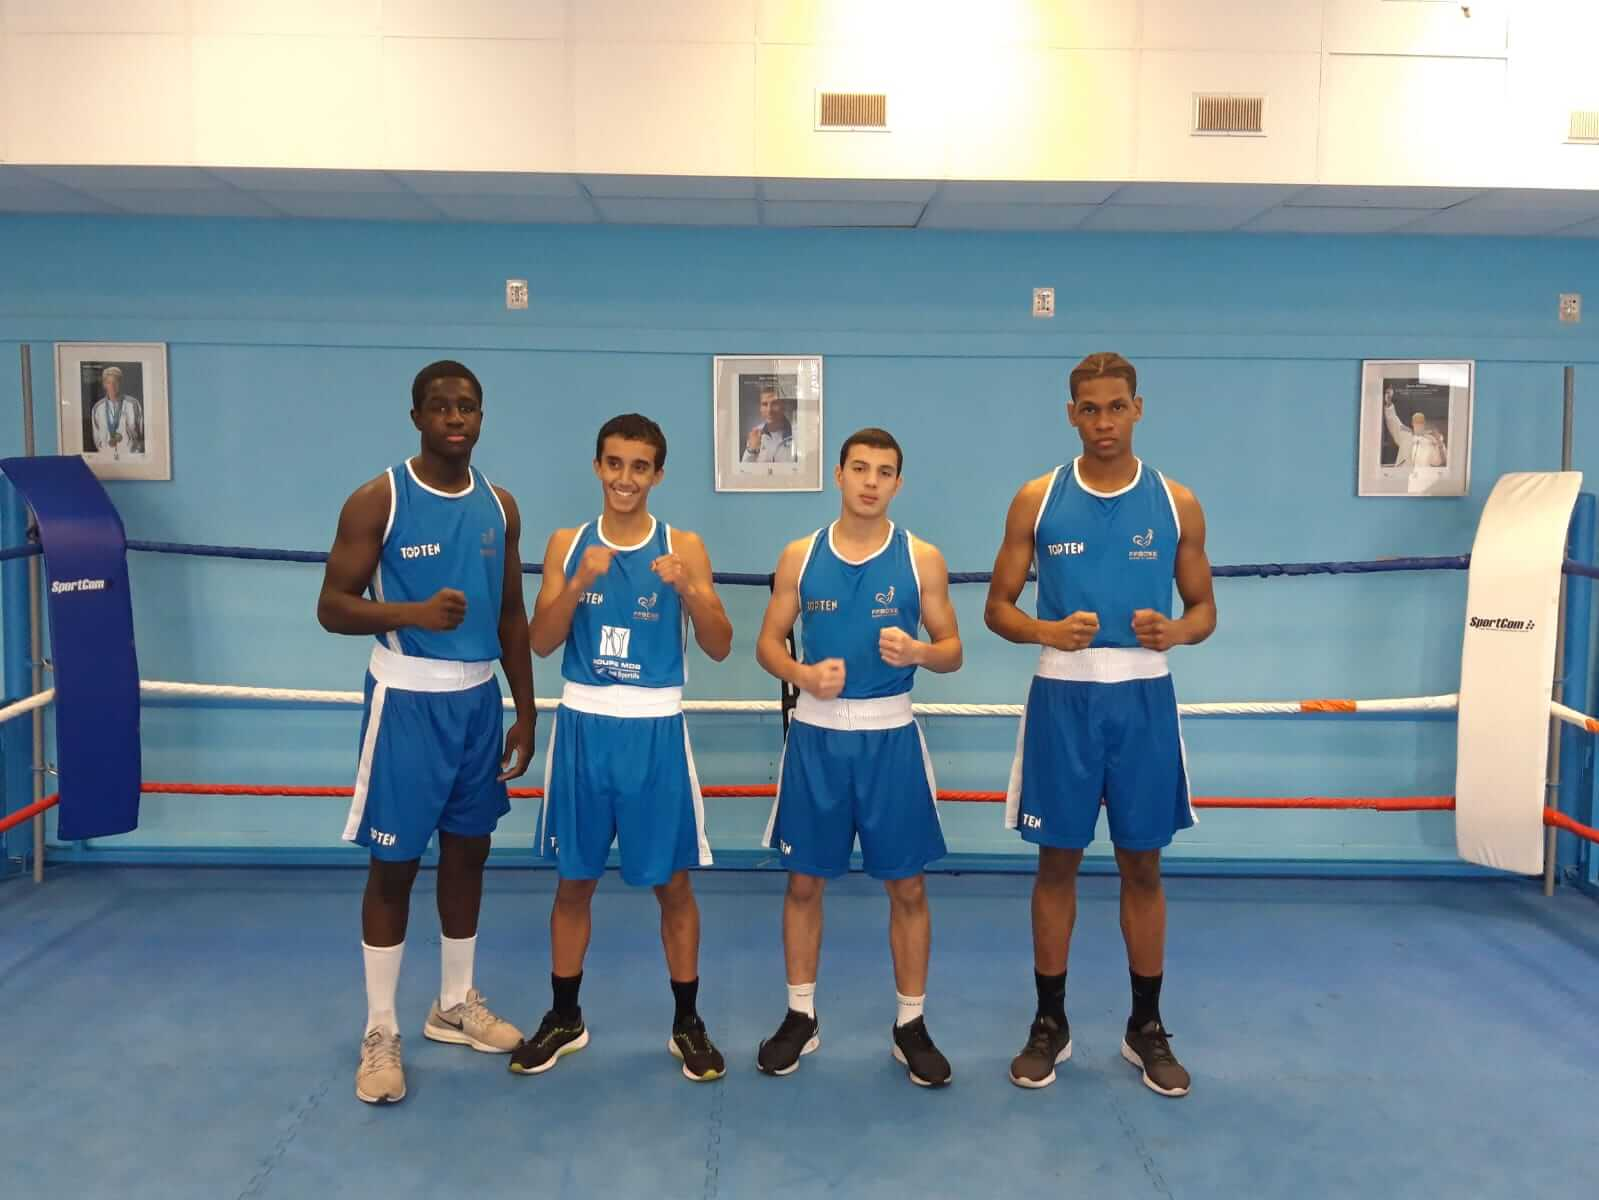 selection cadets europes championnats ffb federation française de boxe